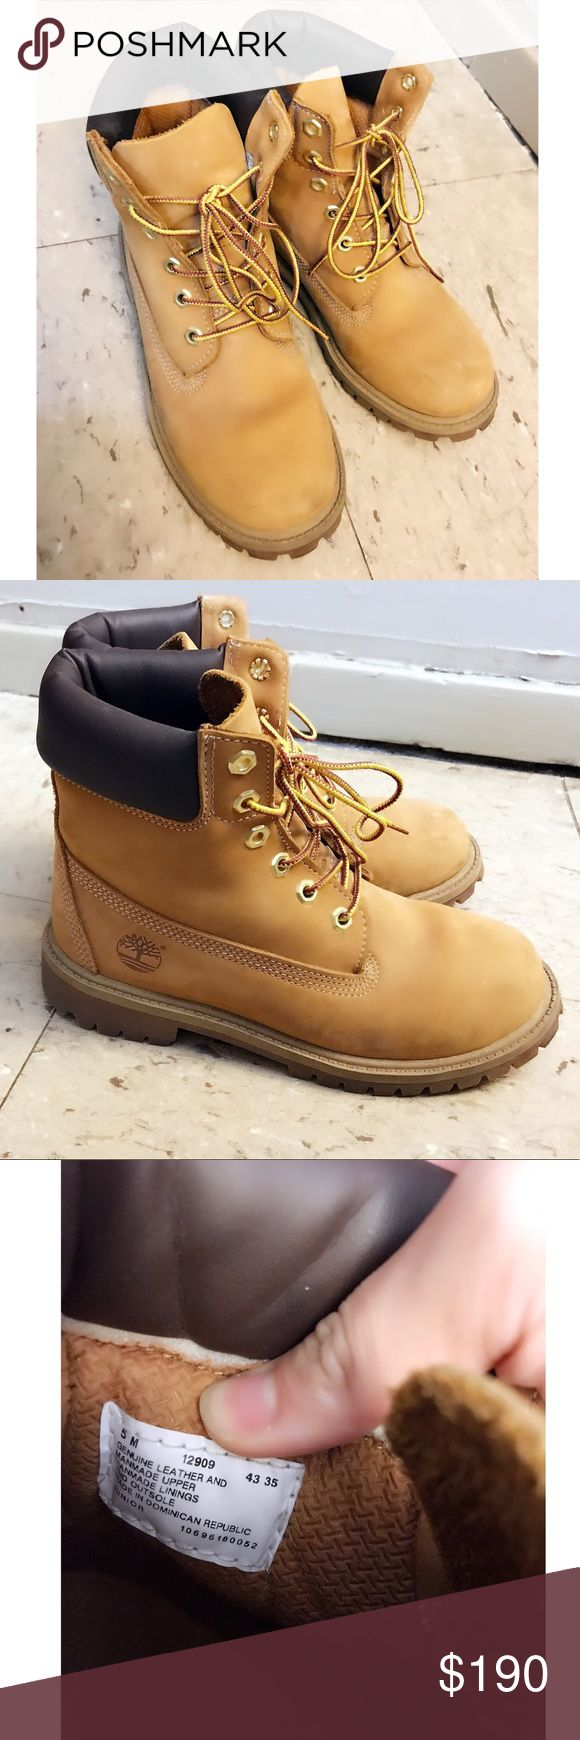 Wheatnutbuck timberland boots trade/offer accepted OPTION 1: would like to trade for the all black timberland size 5M (I think I bought kids 😅 my feet about 22cm (size 5-6.5 woman size depending on shoe brand).    OPTION 2: accepting offers ☺️ I bought these at original price $175 + tax (8.875%) = $190.55 and have only worn them like twice so no low offers please. They are in amazing condition❣️ Timberland Shoes Winter & Rain Boots